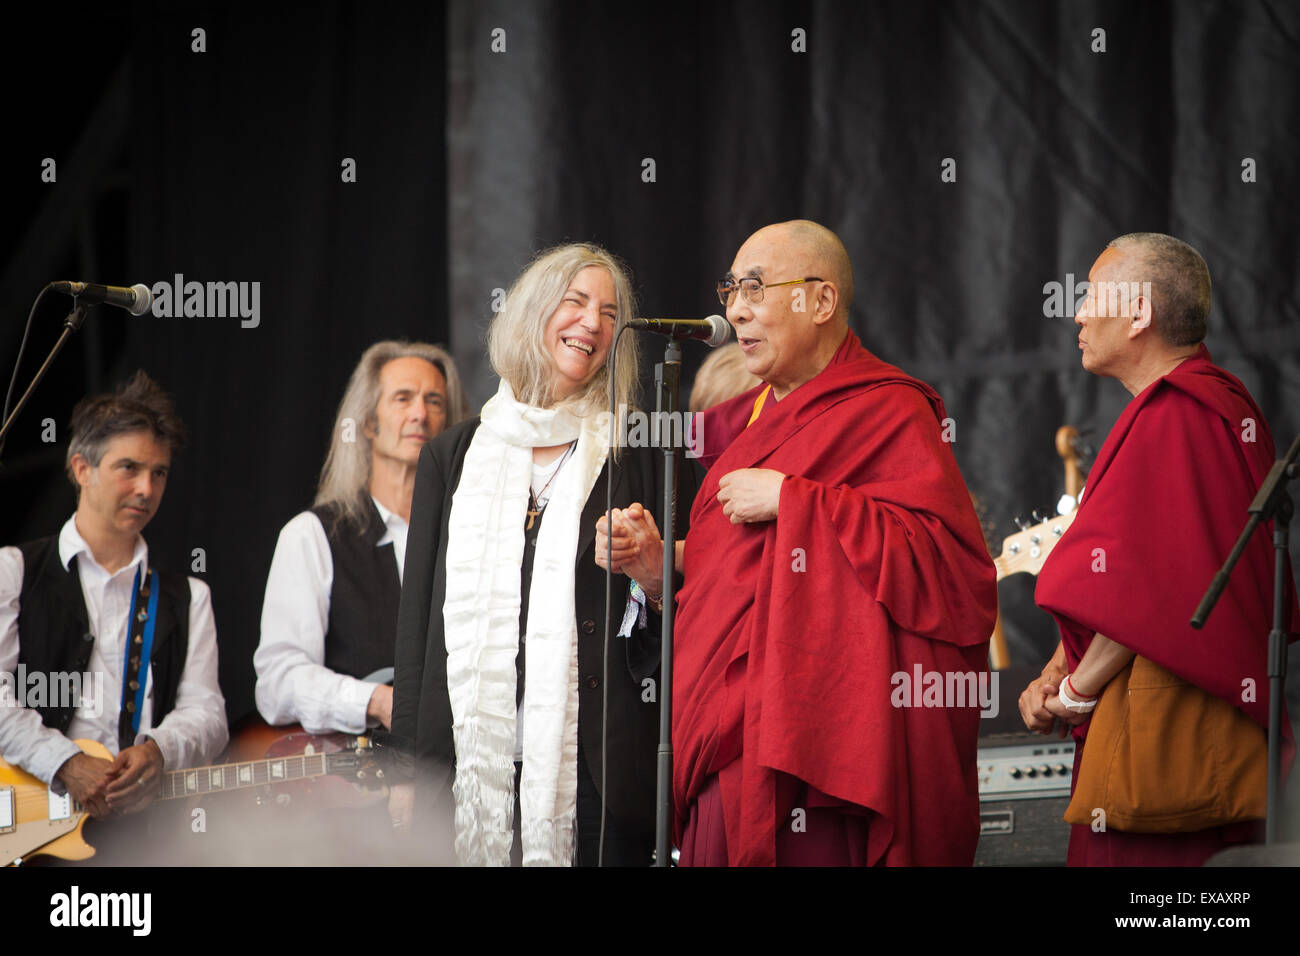 His Holiness the Dalai Lama on the Pyramid Stage with Patti Smith and her band at Glastonbury 28th June 2015ith - Stock Image